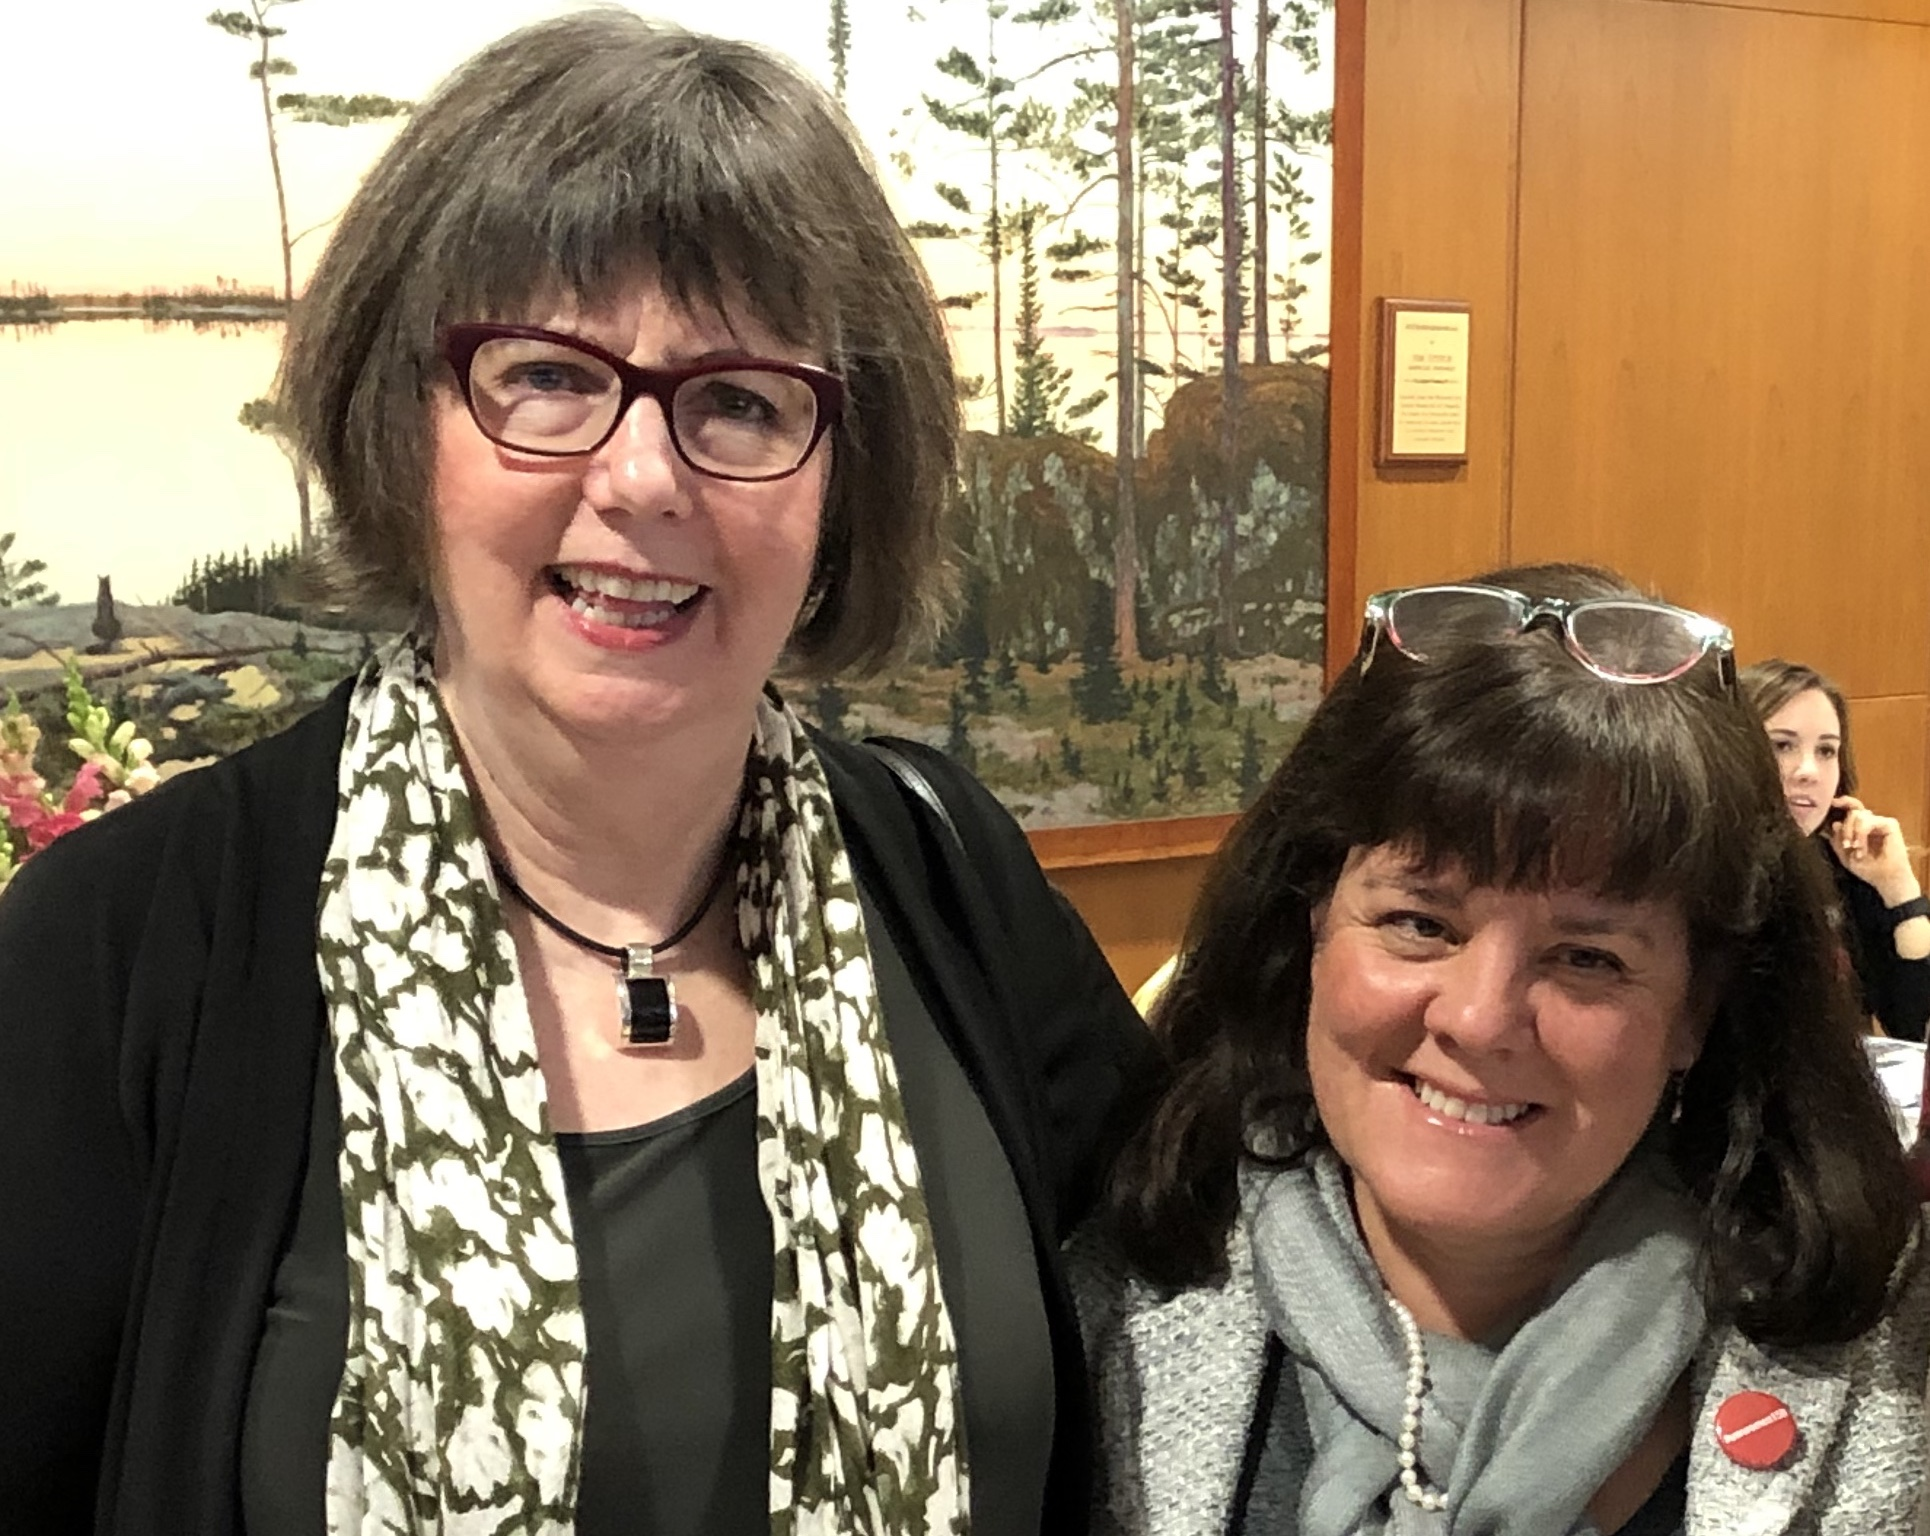 Martha Taylor (left) and Lori DiPrete Brown have spearheaded a five-year old program that greatly enhances fundraising and giving for women and girls at the University of Wisconsin-Madison.